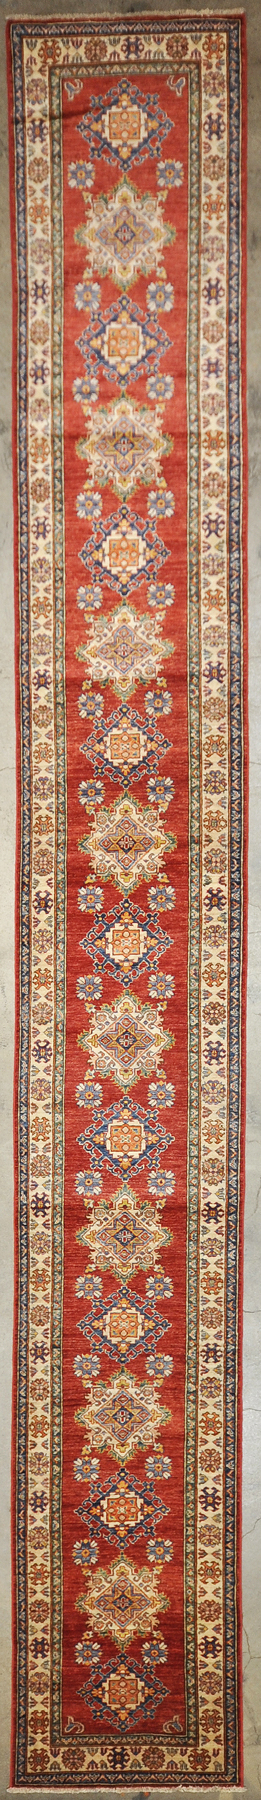 Caucasian Kazak rugs and more oriental carpet 34113-